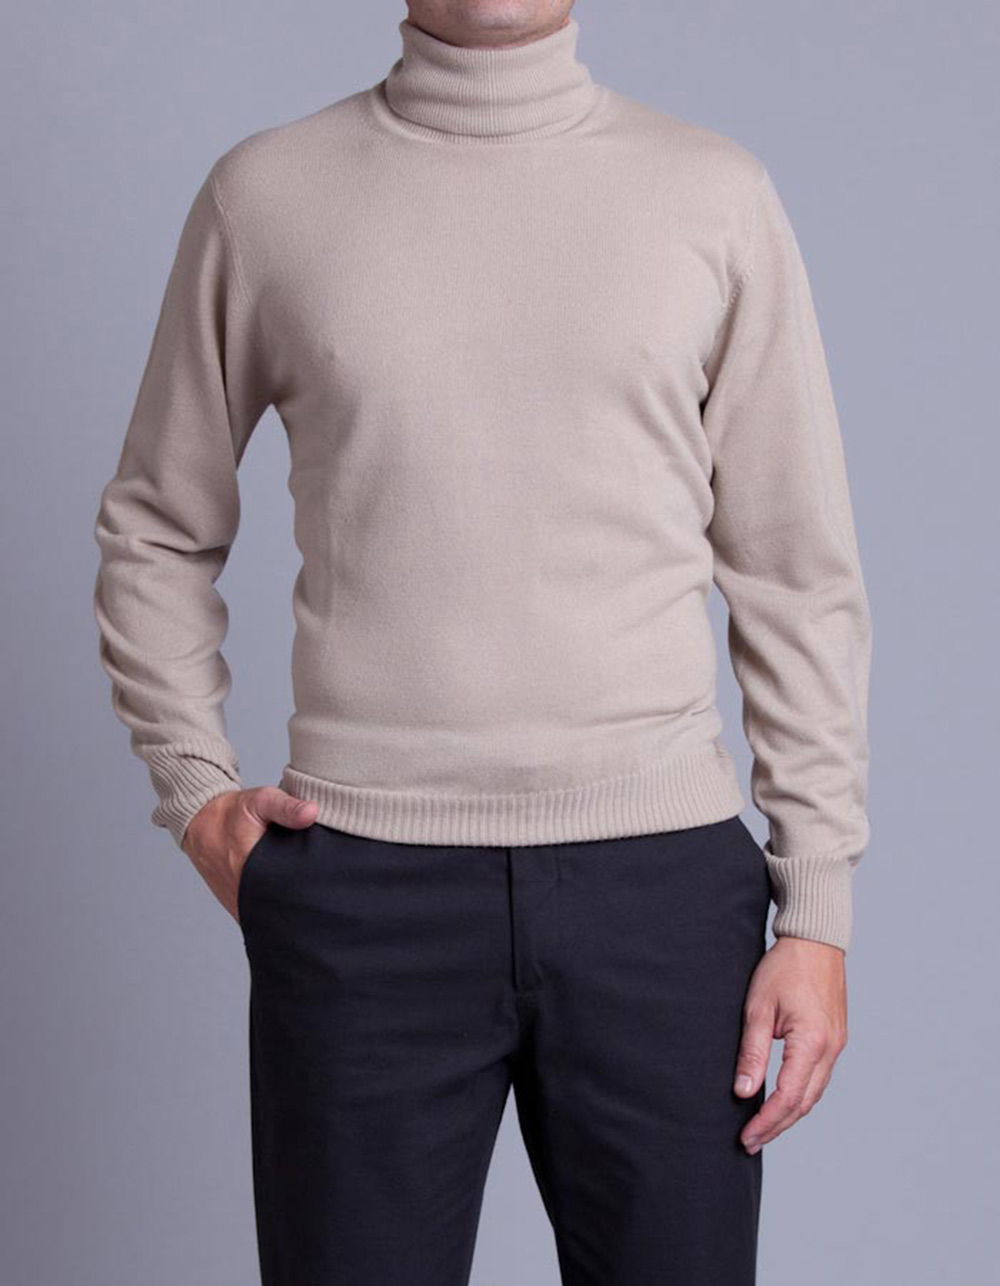 Beige turtleneck jersey